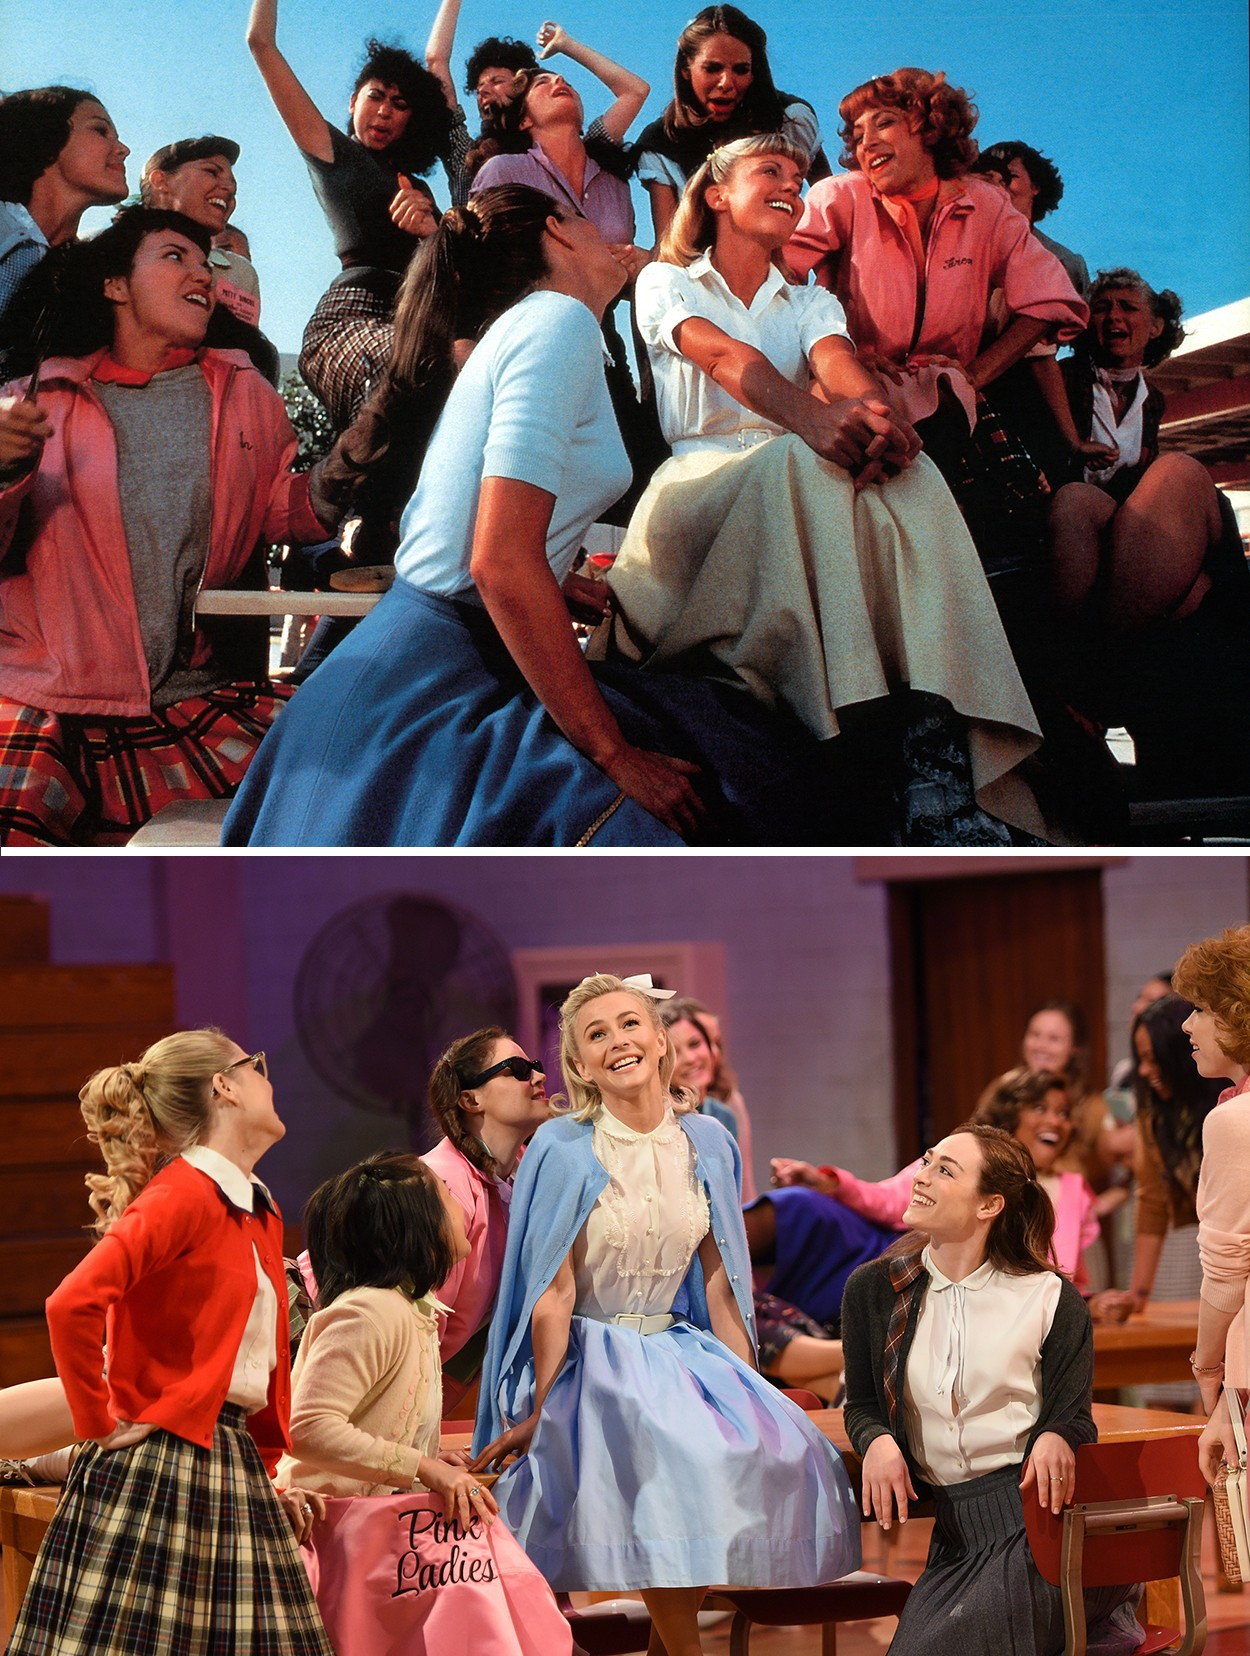 Grease Flashback See Side By Side Snaps Of The Grease Live Cast And The Original Movie Stars Billboard